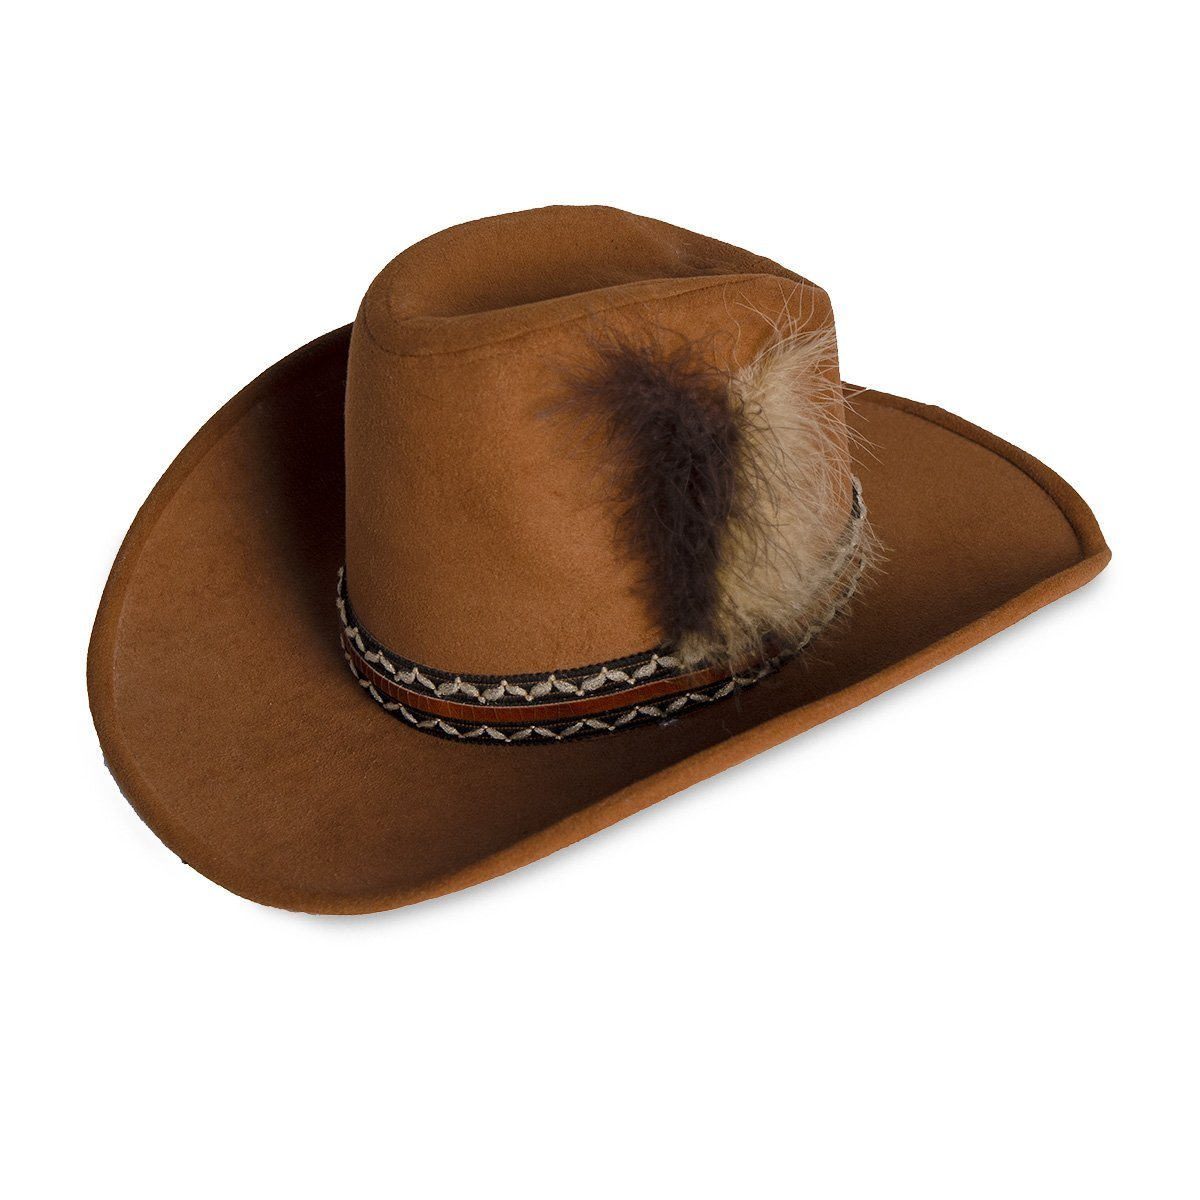 Vintage Cowboy Hat 2, Dark Tan Wool Felt, Feathers